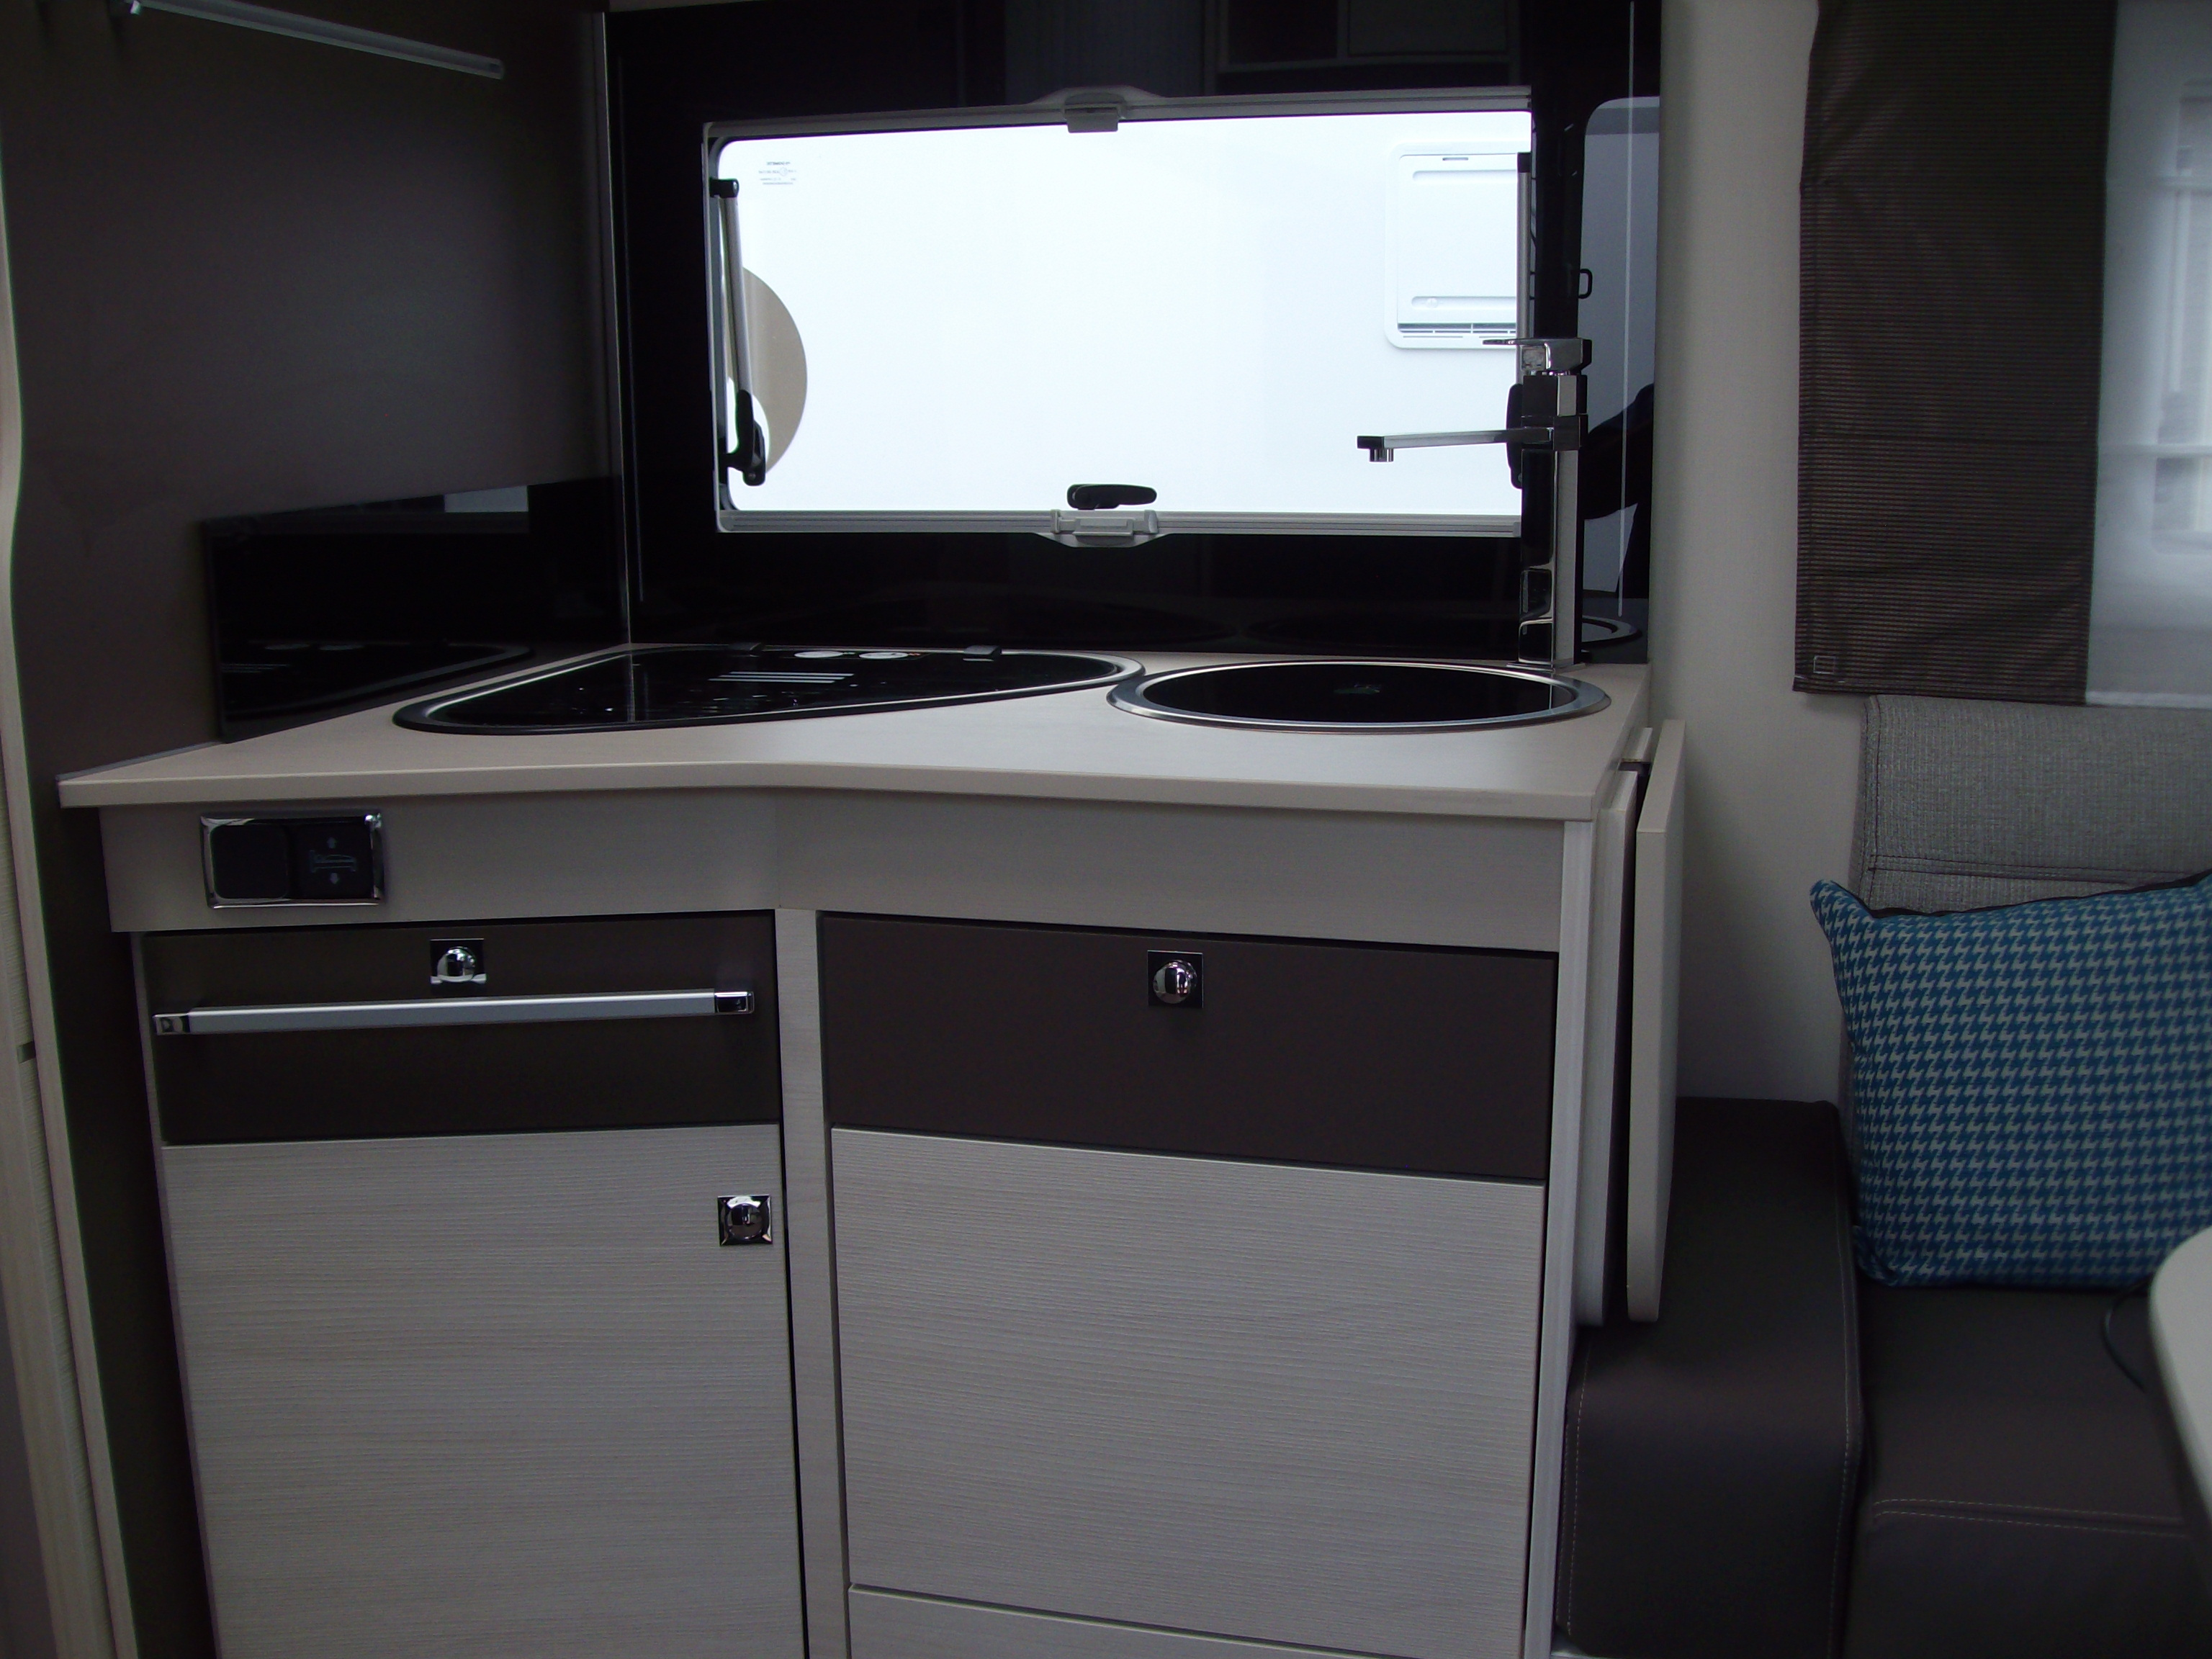 Chausson Welcome 738 Xlb